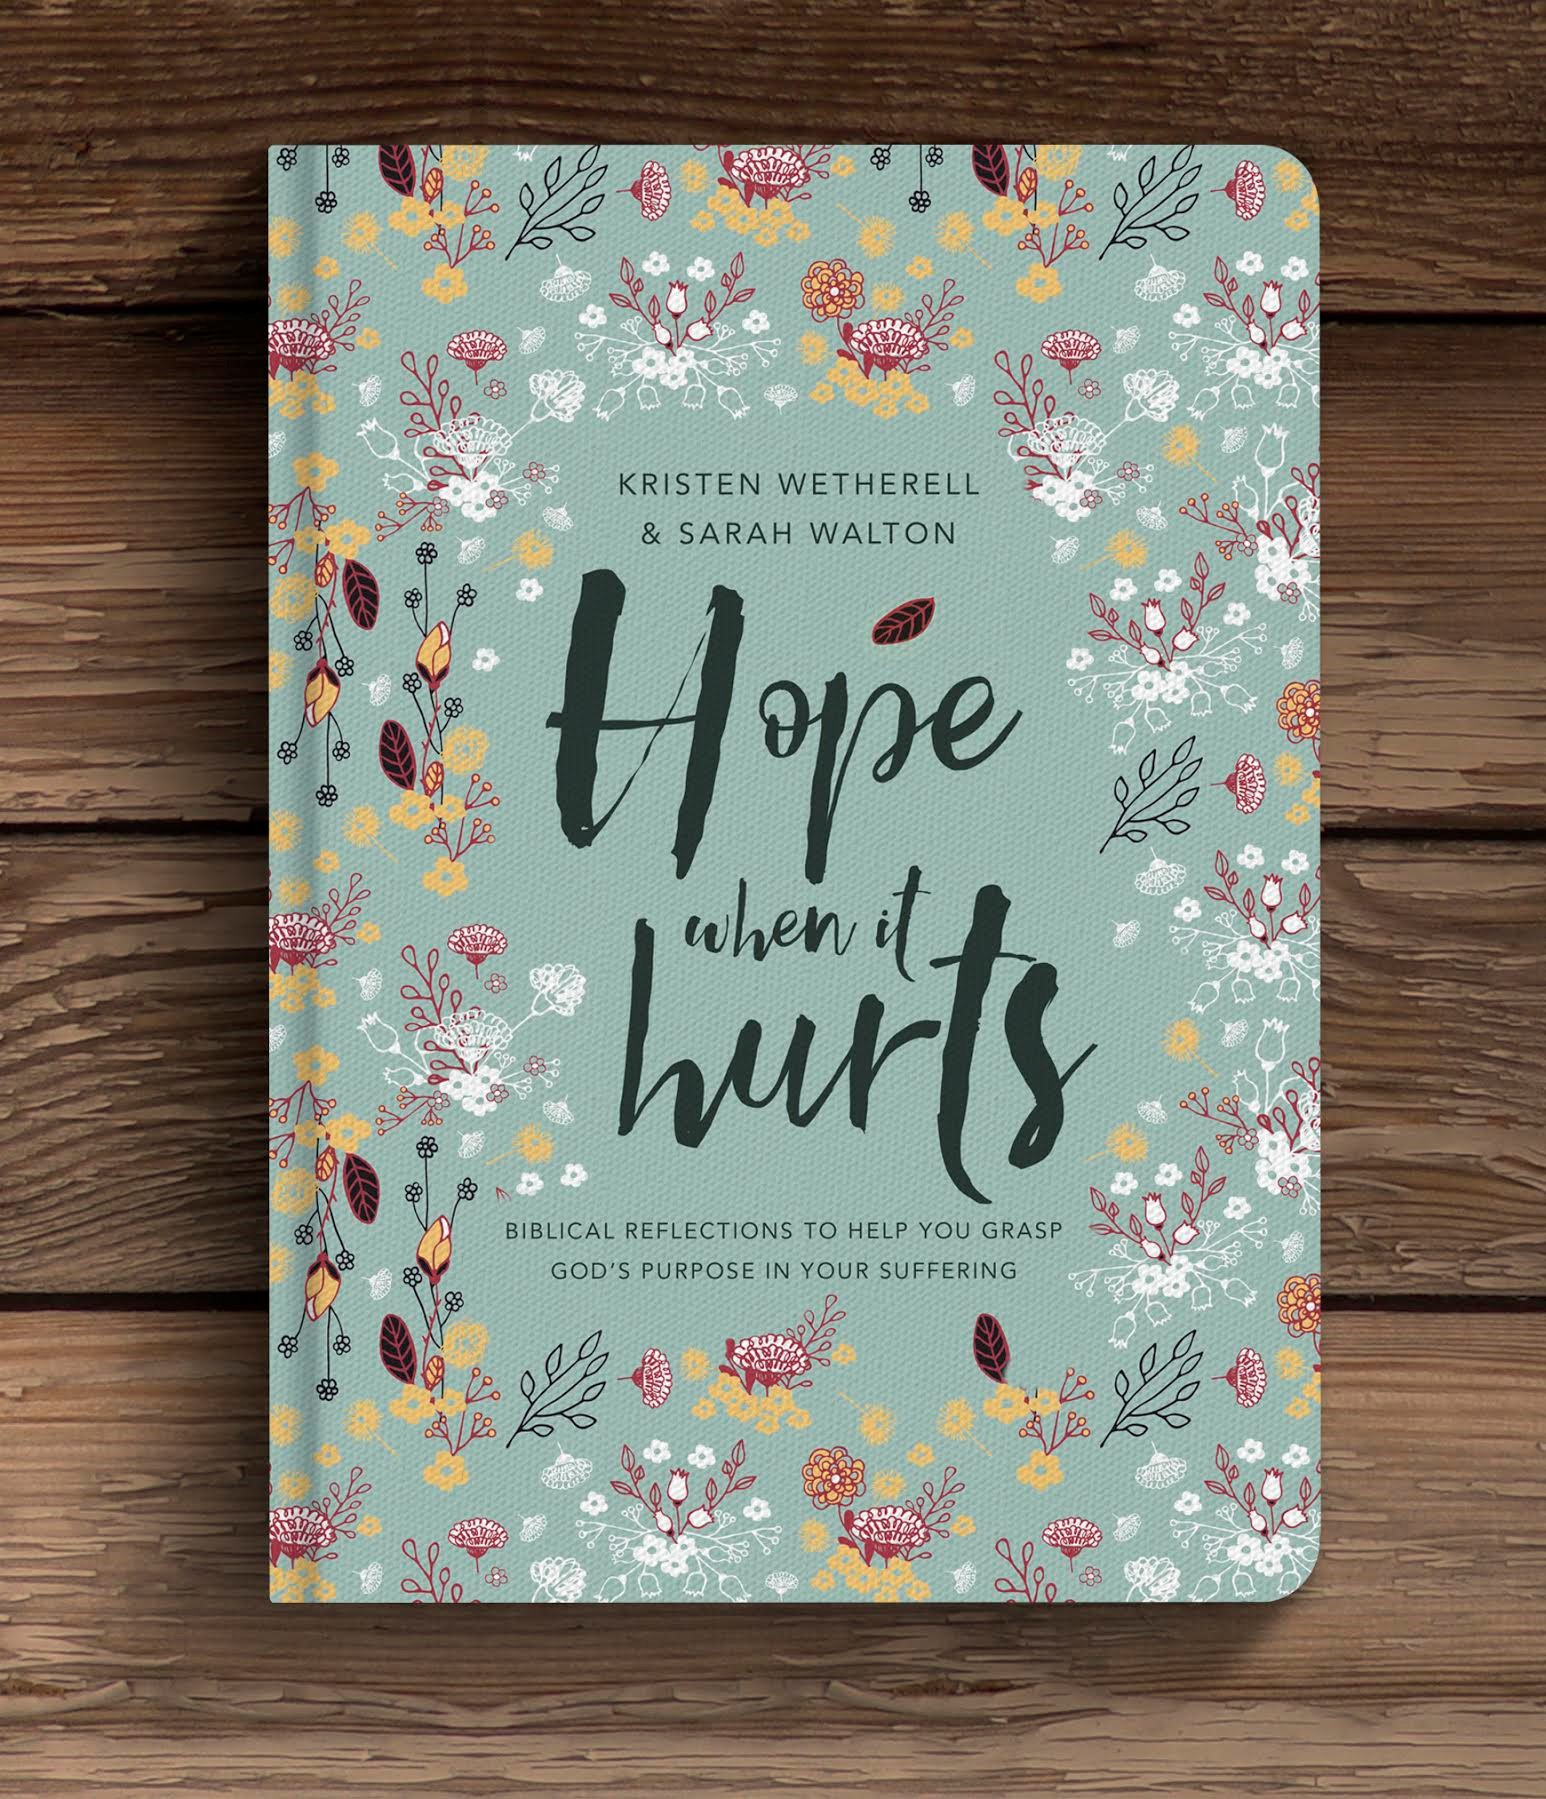 Hope When it Hurts Book by Kristen Wetherell and Sarah Walton